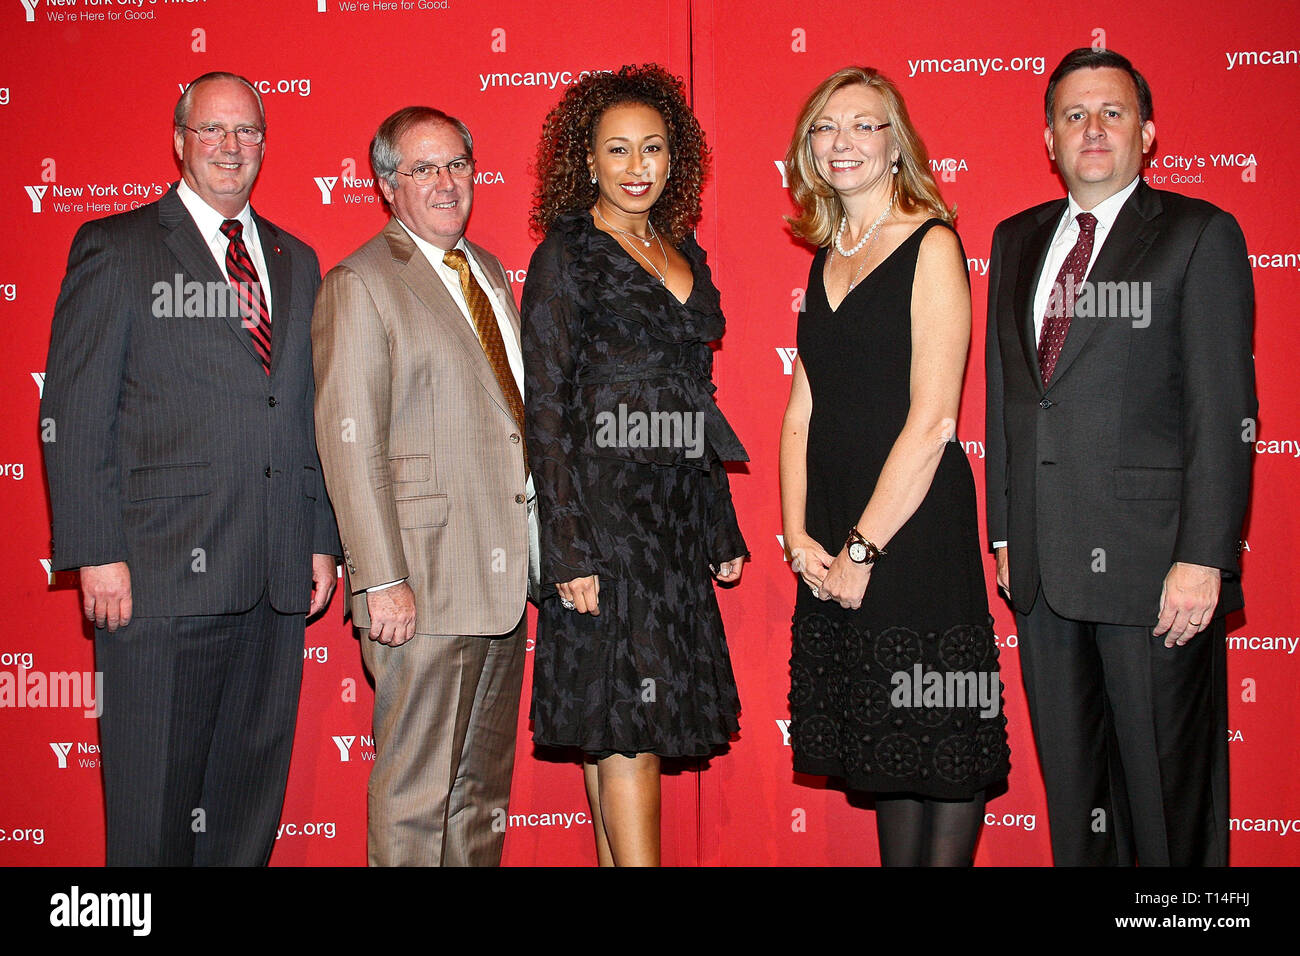 New York, NY, USA. 26 Oct, 2009. President/CEO of YMCA of Greater New York Jack Lund, Chair of the YMCA Board and Chairman/CEO of Con Edison, Kevin Burke, actress, Tamara Tunie, Vice Chair and EVP at The Nielsen Company, Susan Whiting, and President and CEO of Meridian Capital, William Lawrence at The Monday, Oct 26, 2009 YMCA's Arts & Letters Auction and Reception at Frederick P. Rose Hall, Jazz at Lincoln Center in New York, NY, USA. Credit: Steve Mack/S.D. Mack Pictures/Alamy - Stock Image